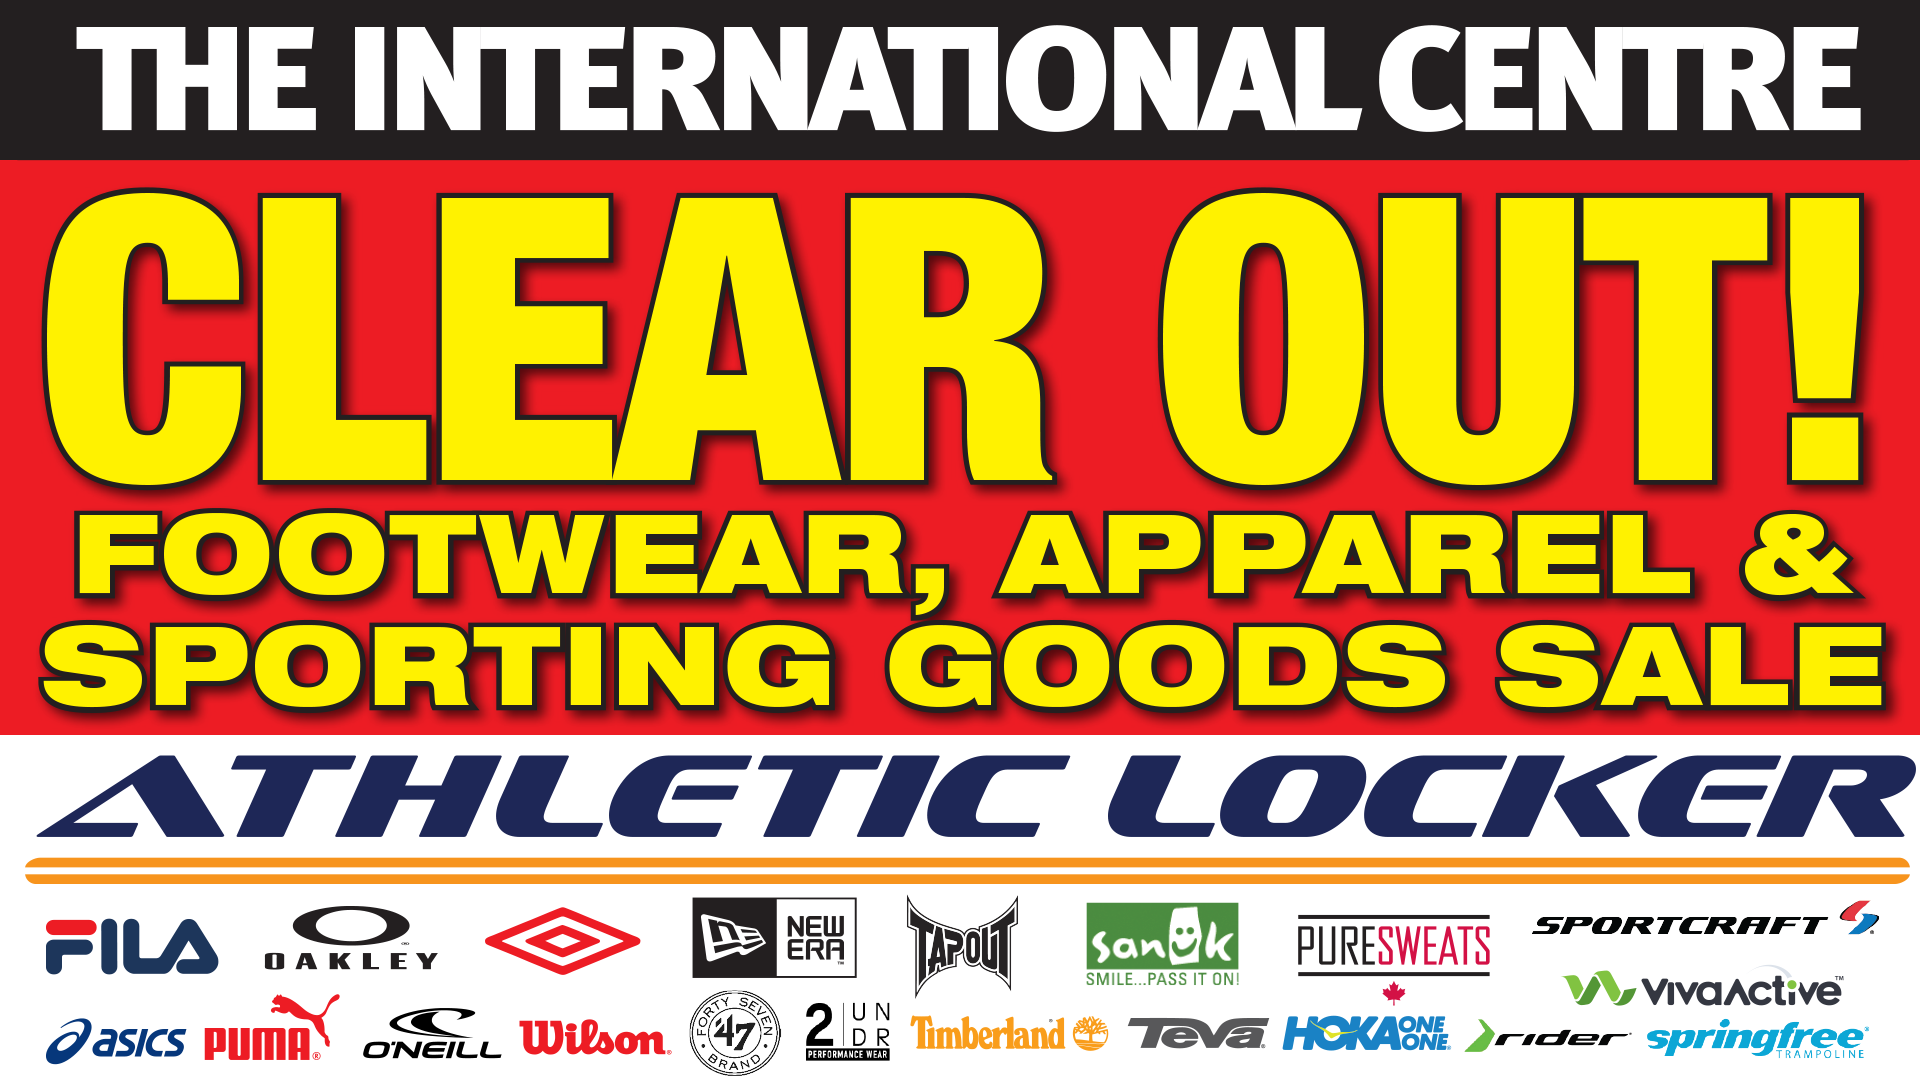 Athletic Locker Footwear, Apparel and Sporting Goods Clear Out Sale